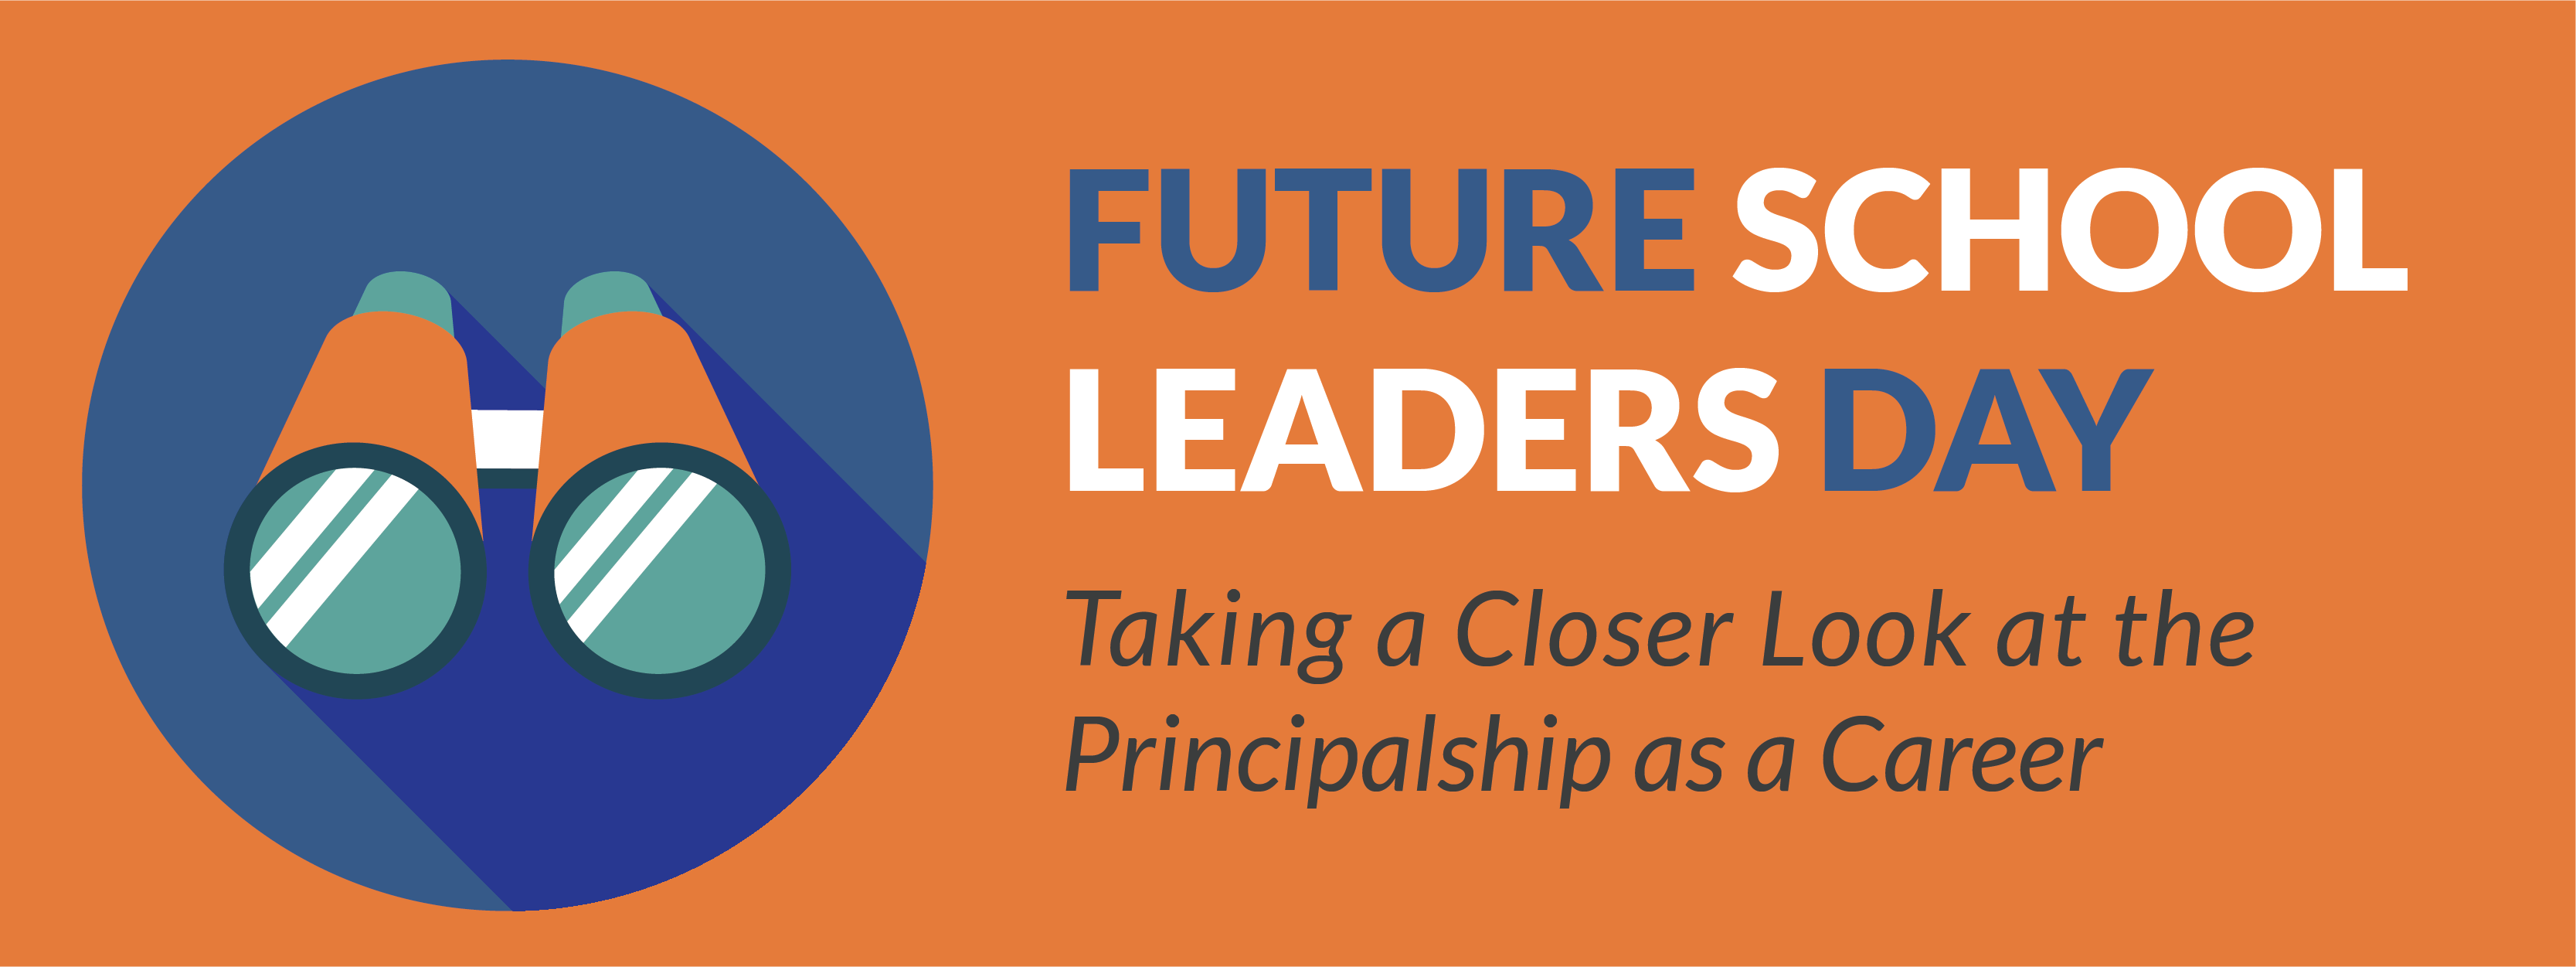 Future School Leaders Day logo